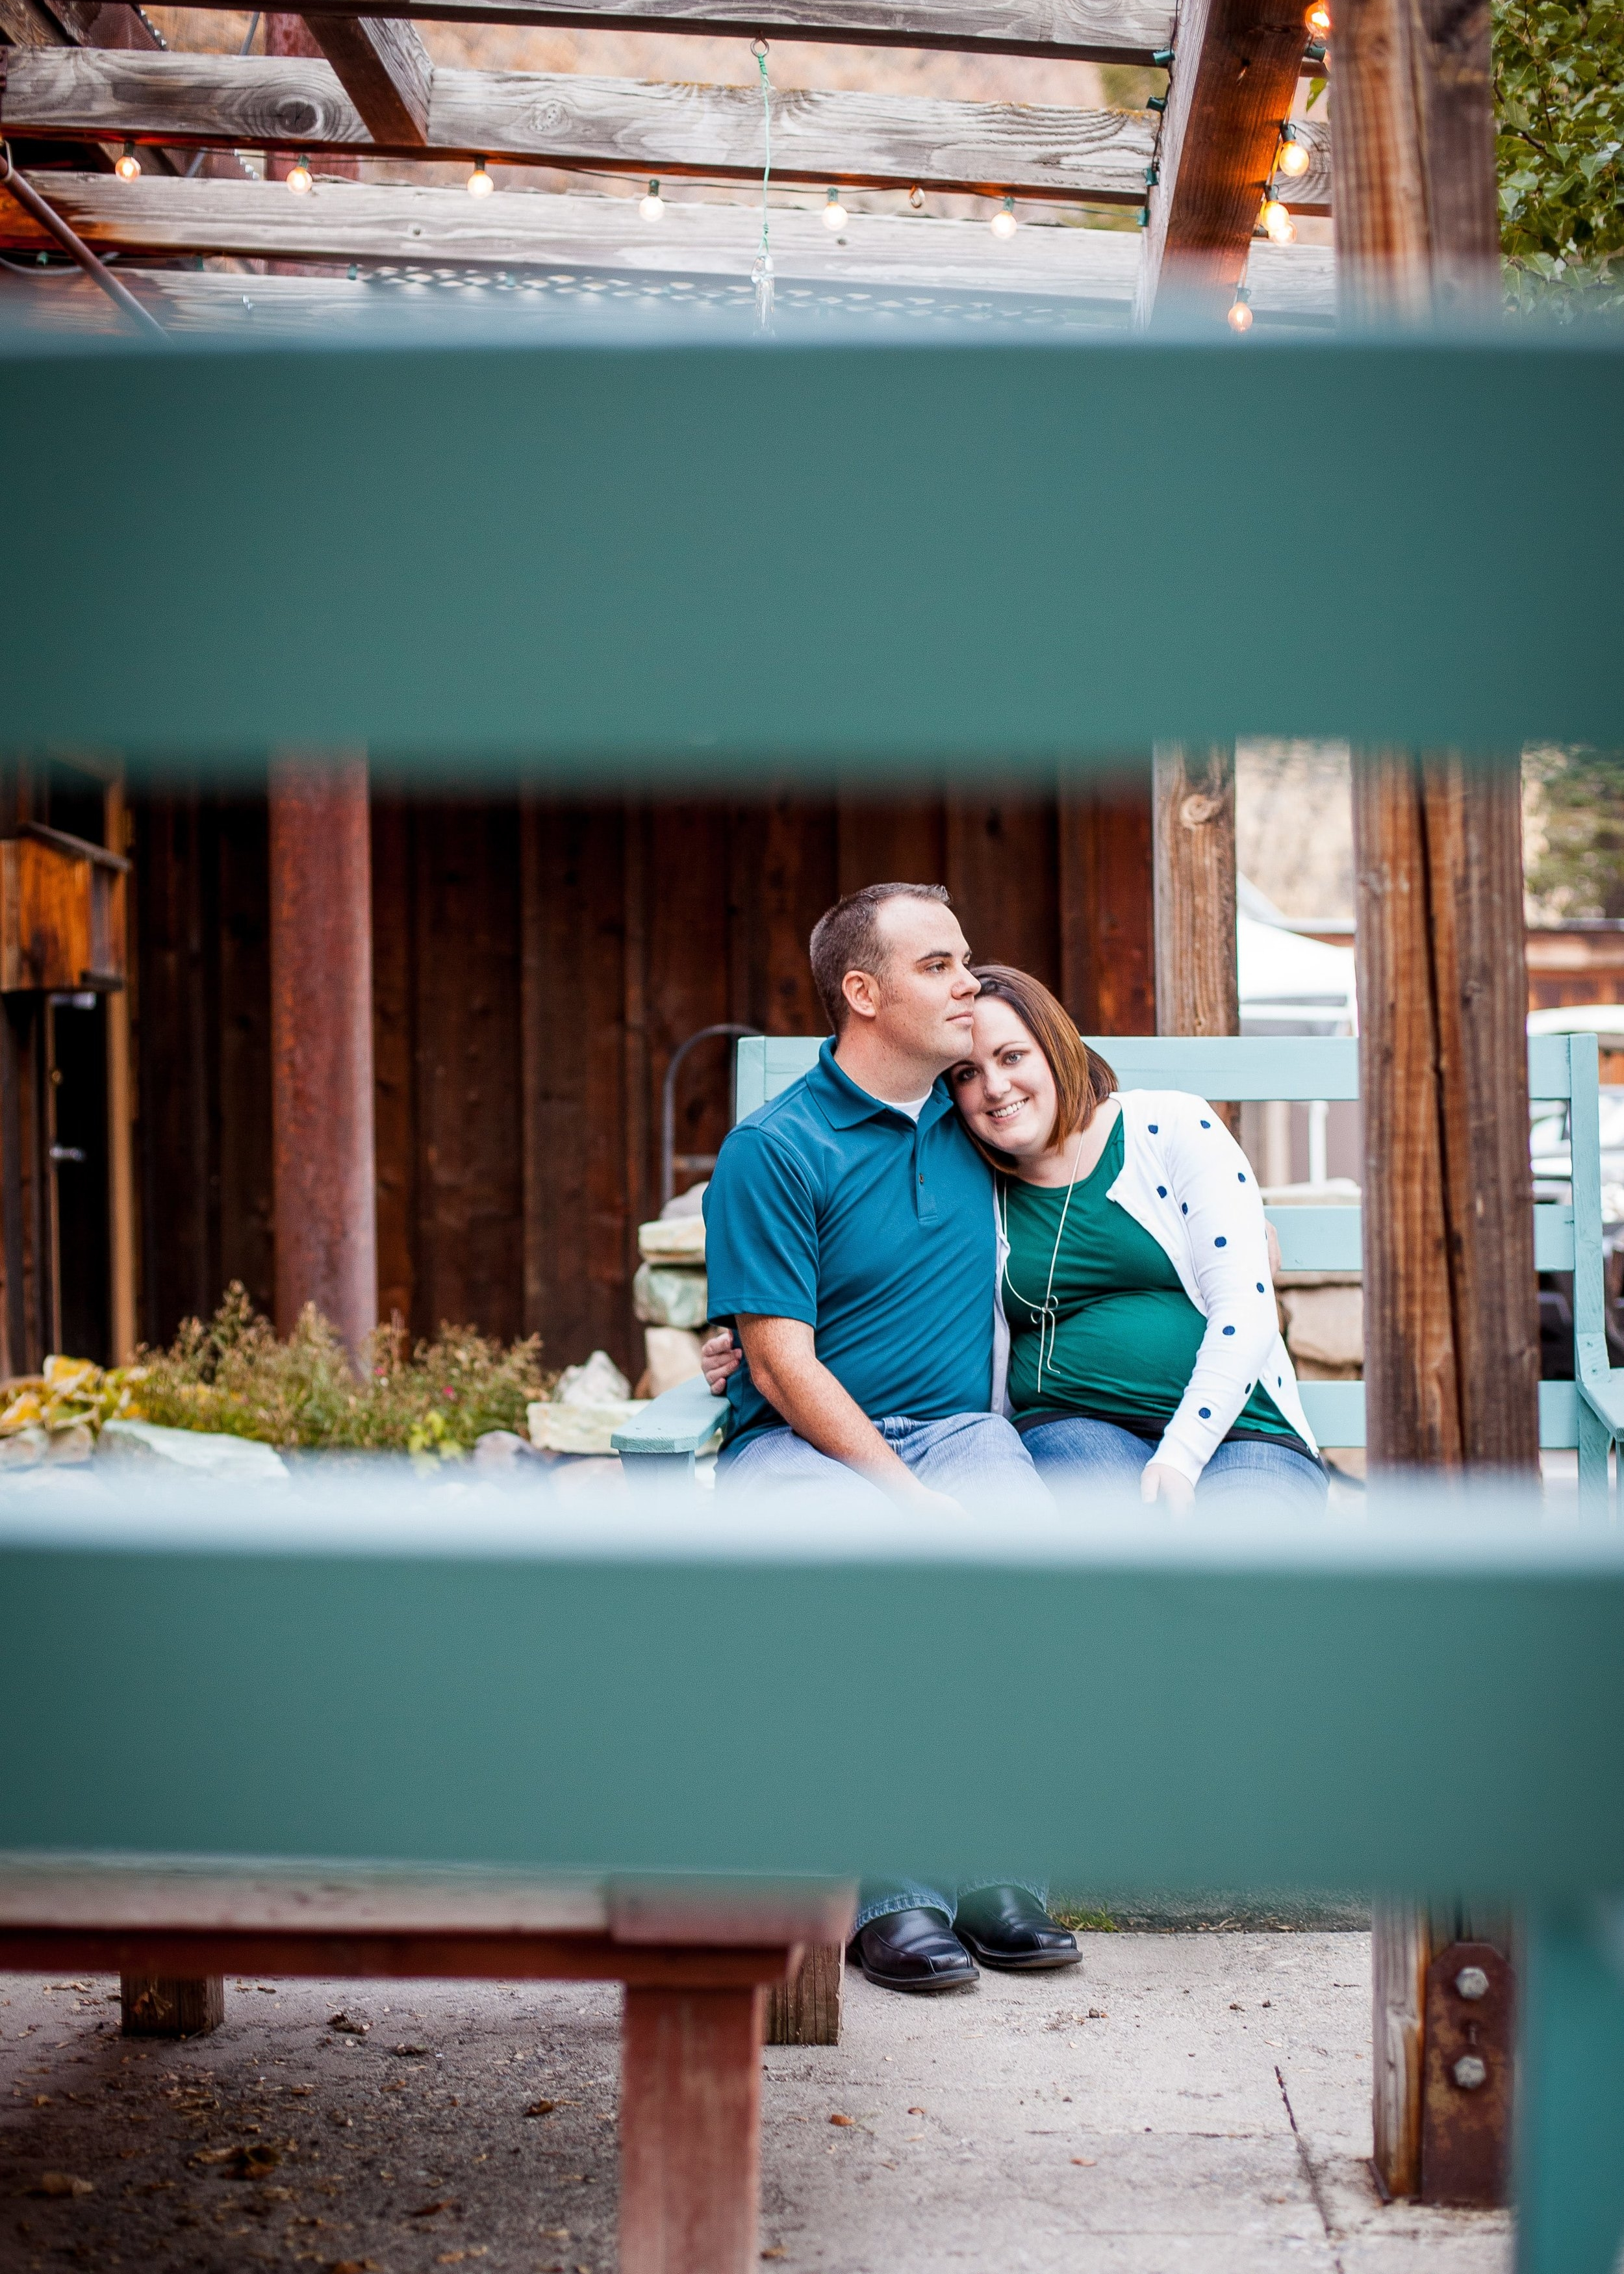 growing together in marriage